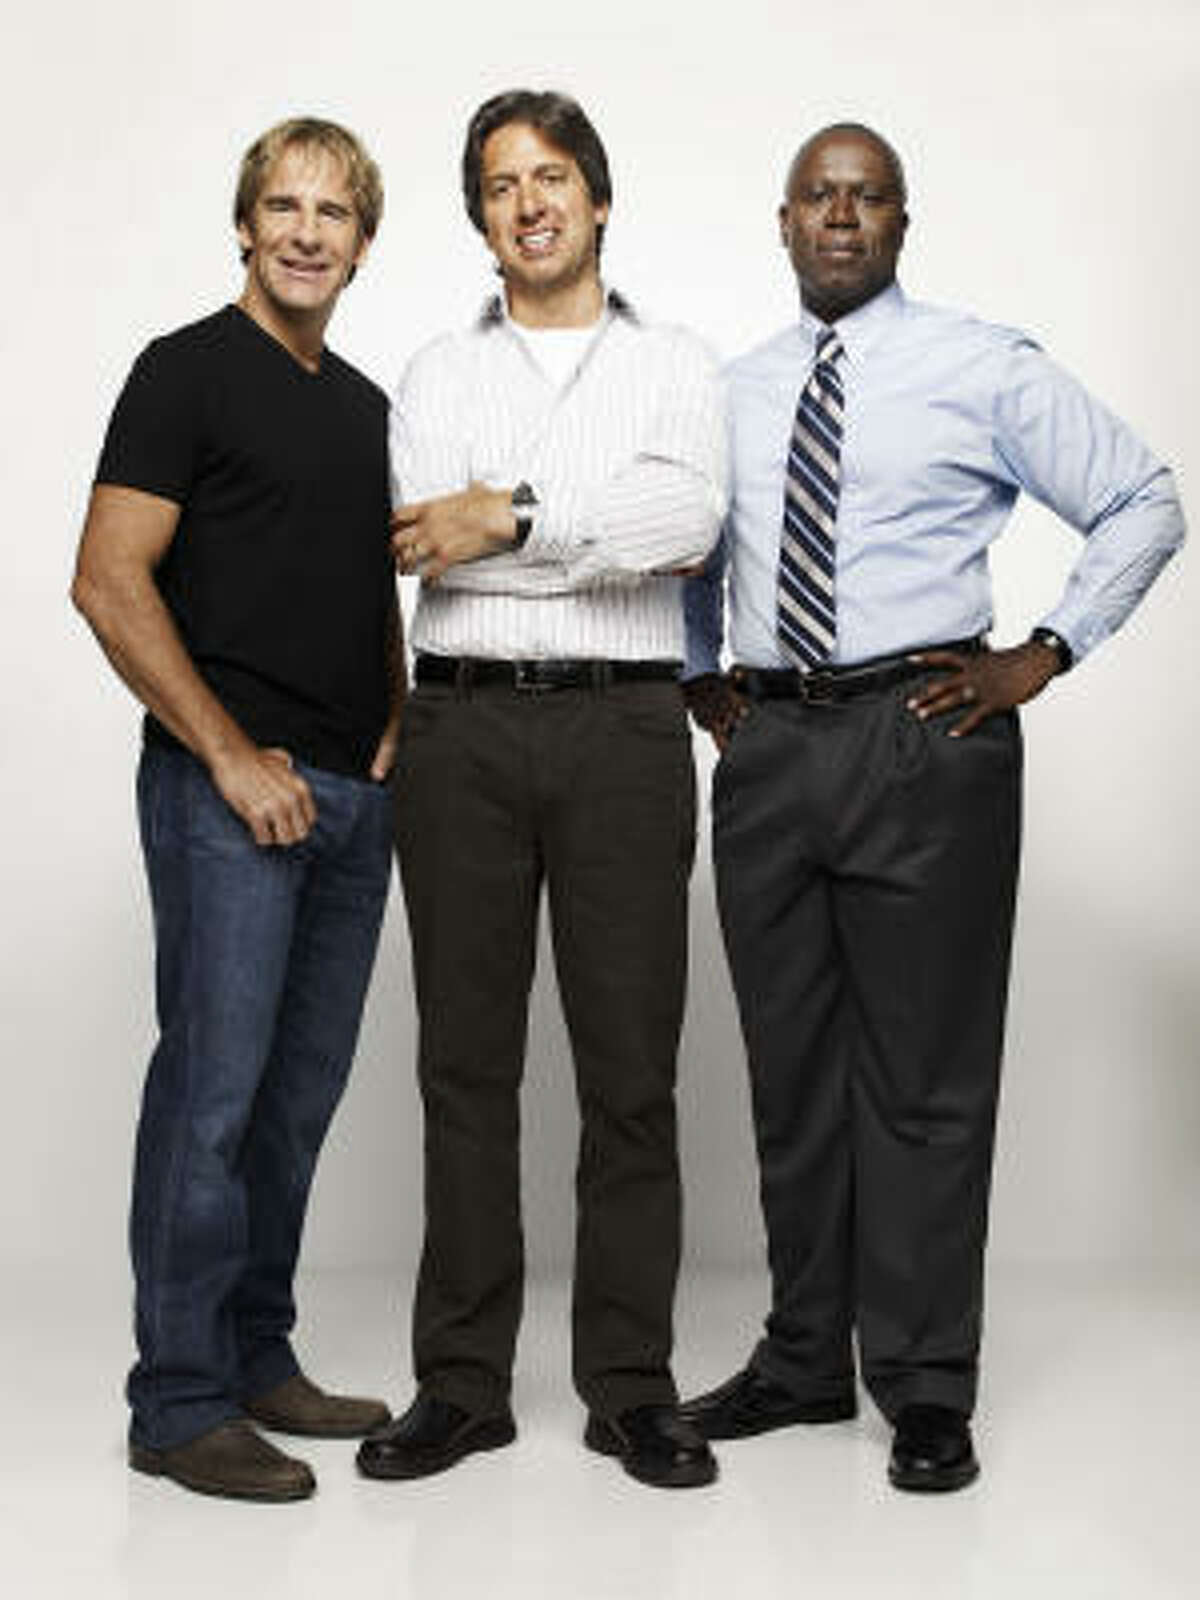 Scott Bakula, from left, Ray Romano and Andre Braugher star in Men Of A Certain Age.